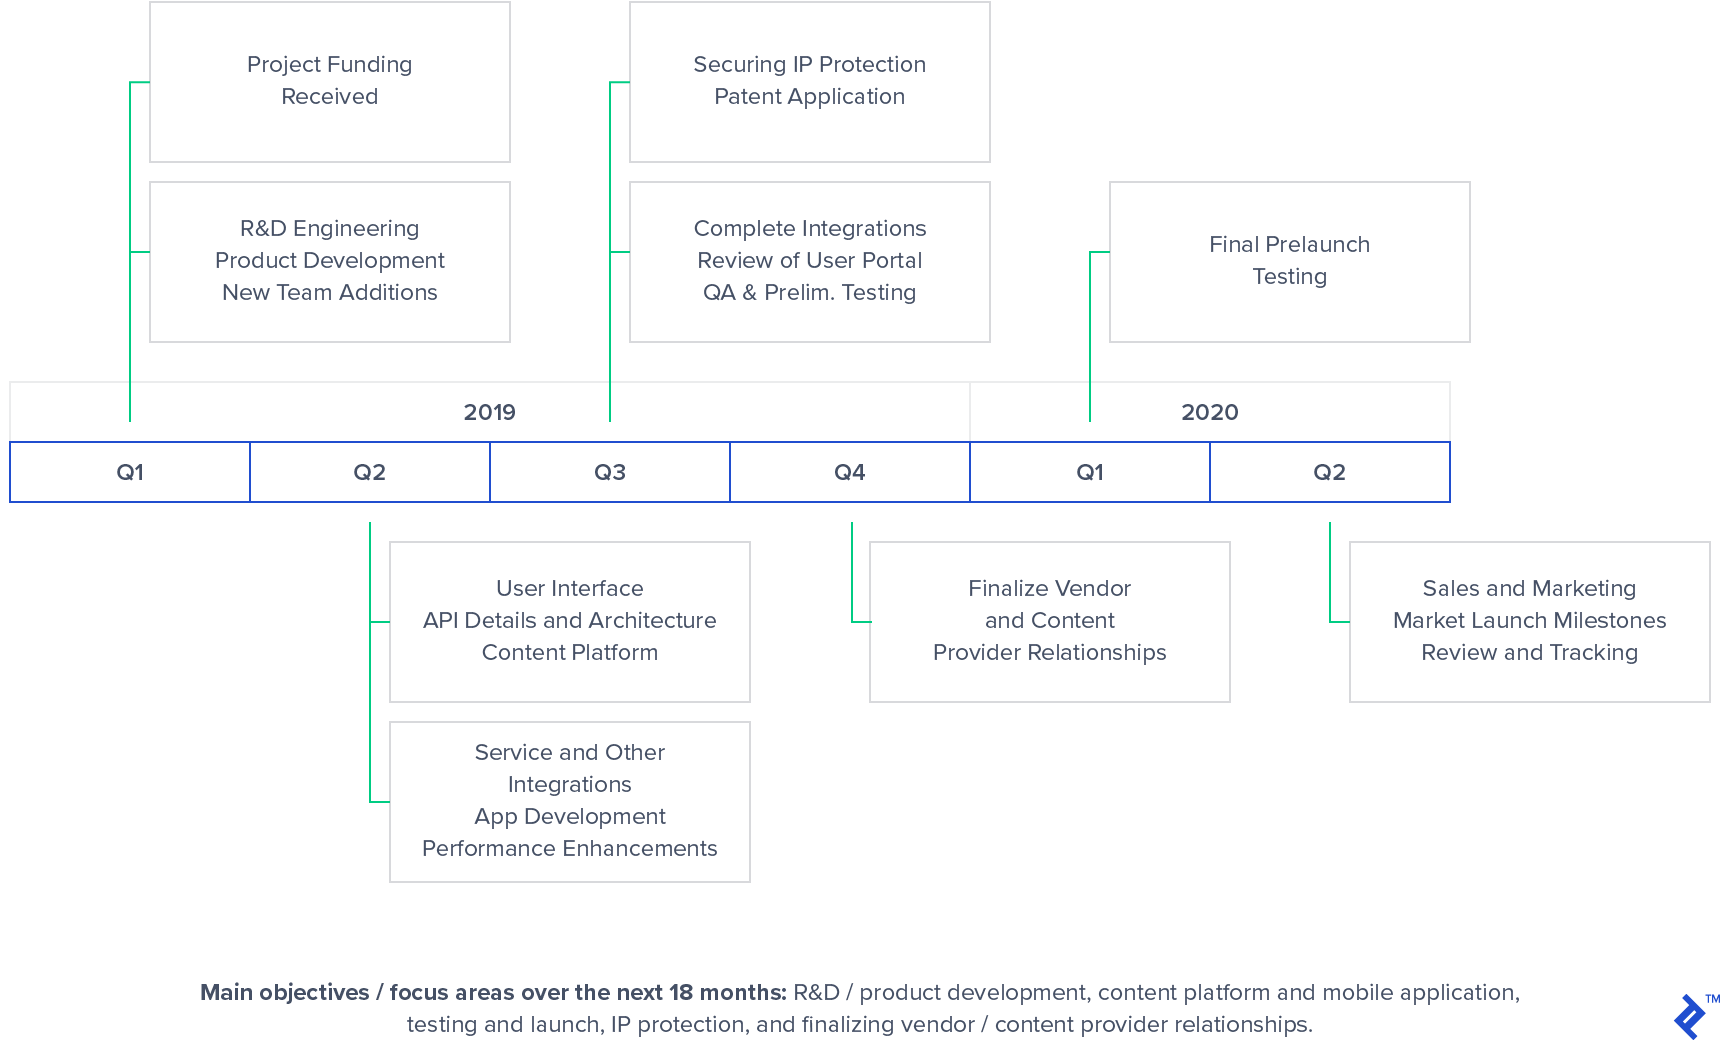 Roadmap example for intangible asset planning.